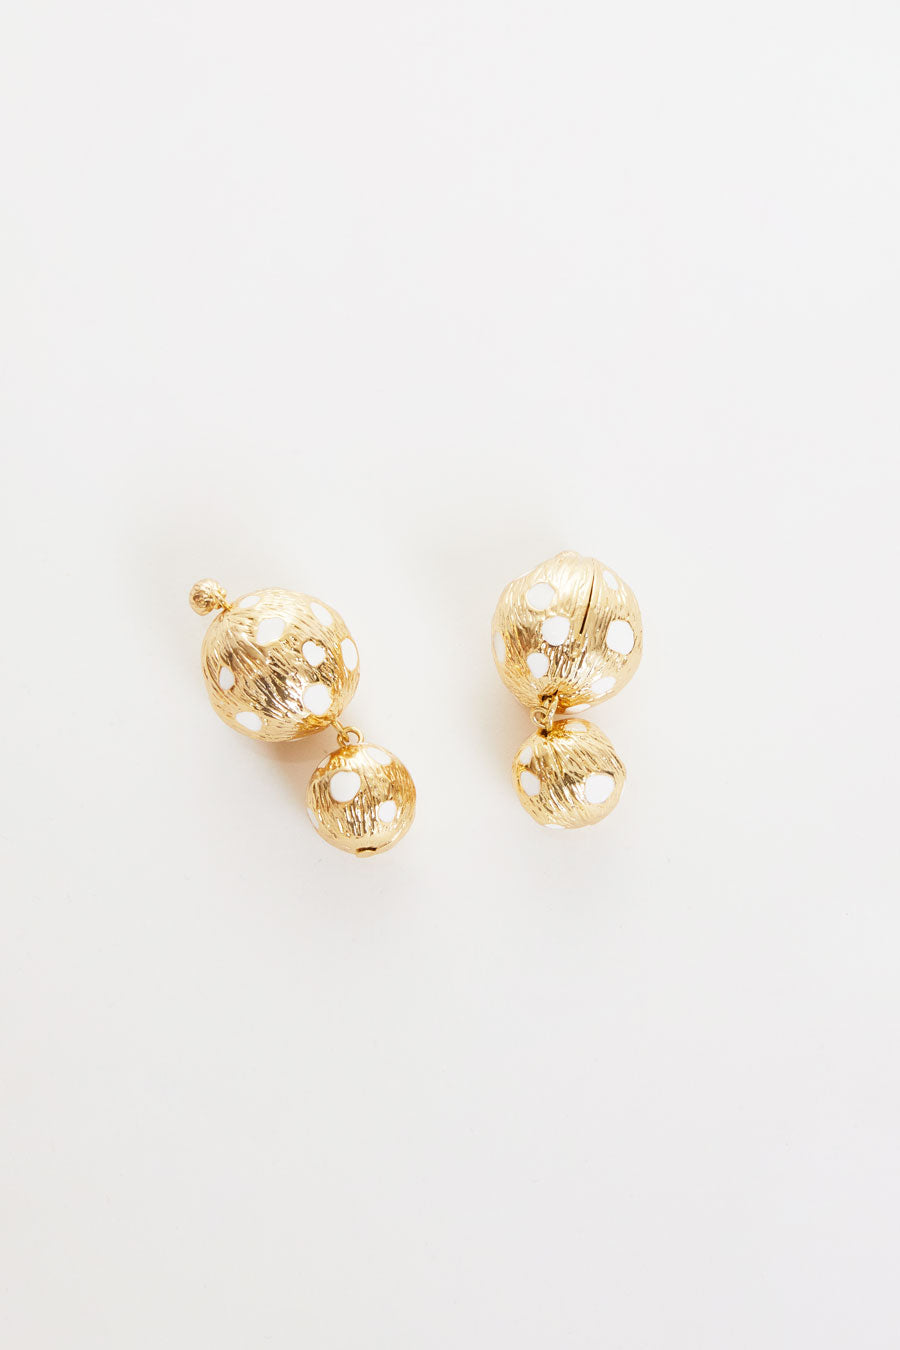 Rejina Pyo Cameron Earrings in Gold Plated with Ivory Enamel